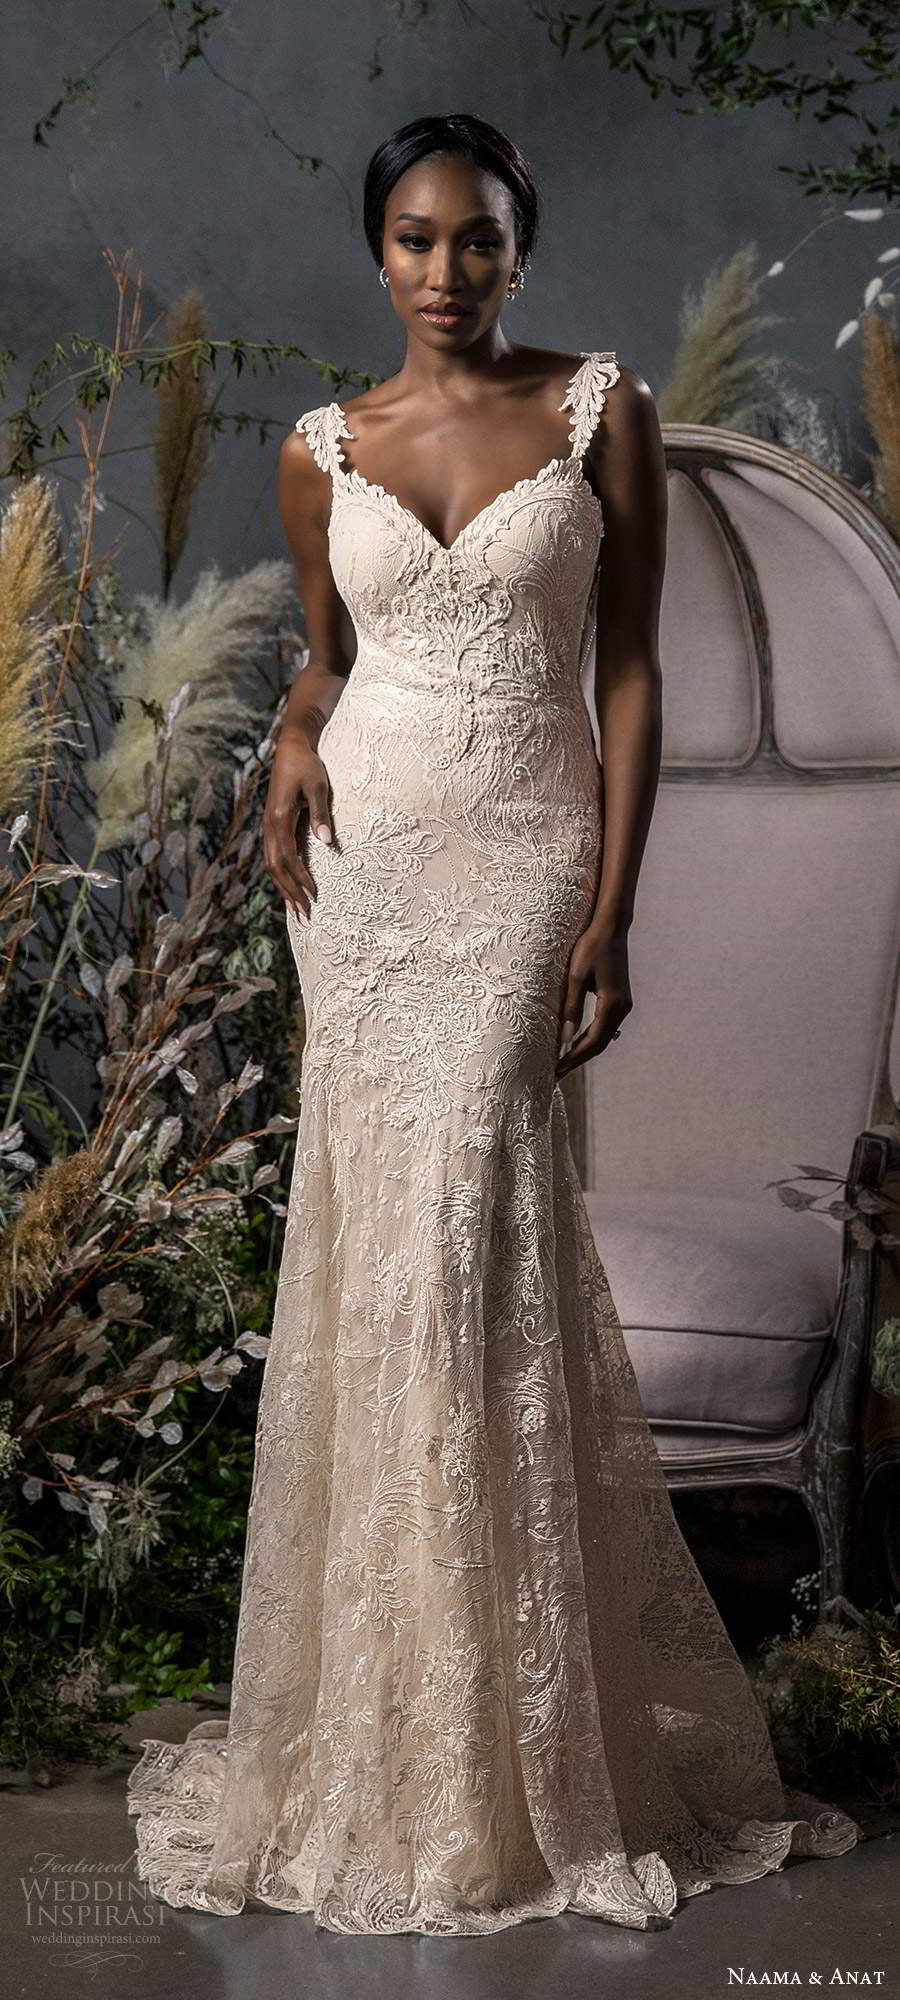 naama anat fall 2020 bridal sleeveless straps sweetheart neckline fully embellished fit flare a line wedding dress sweep train (8) lv